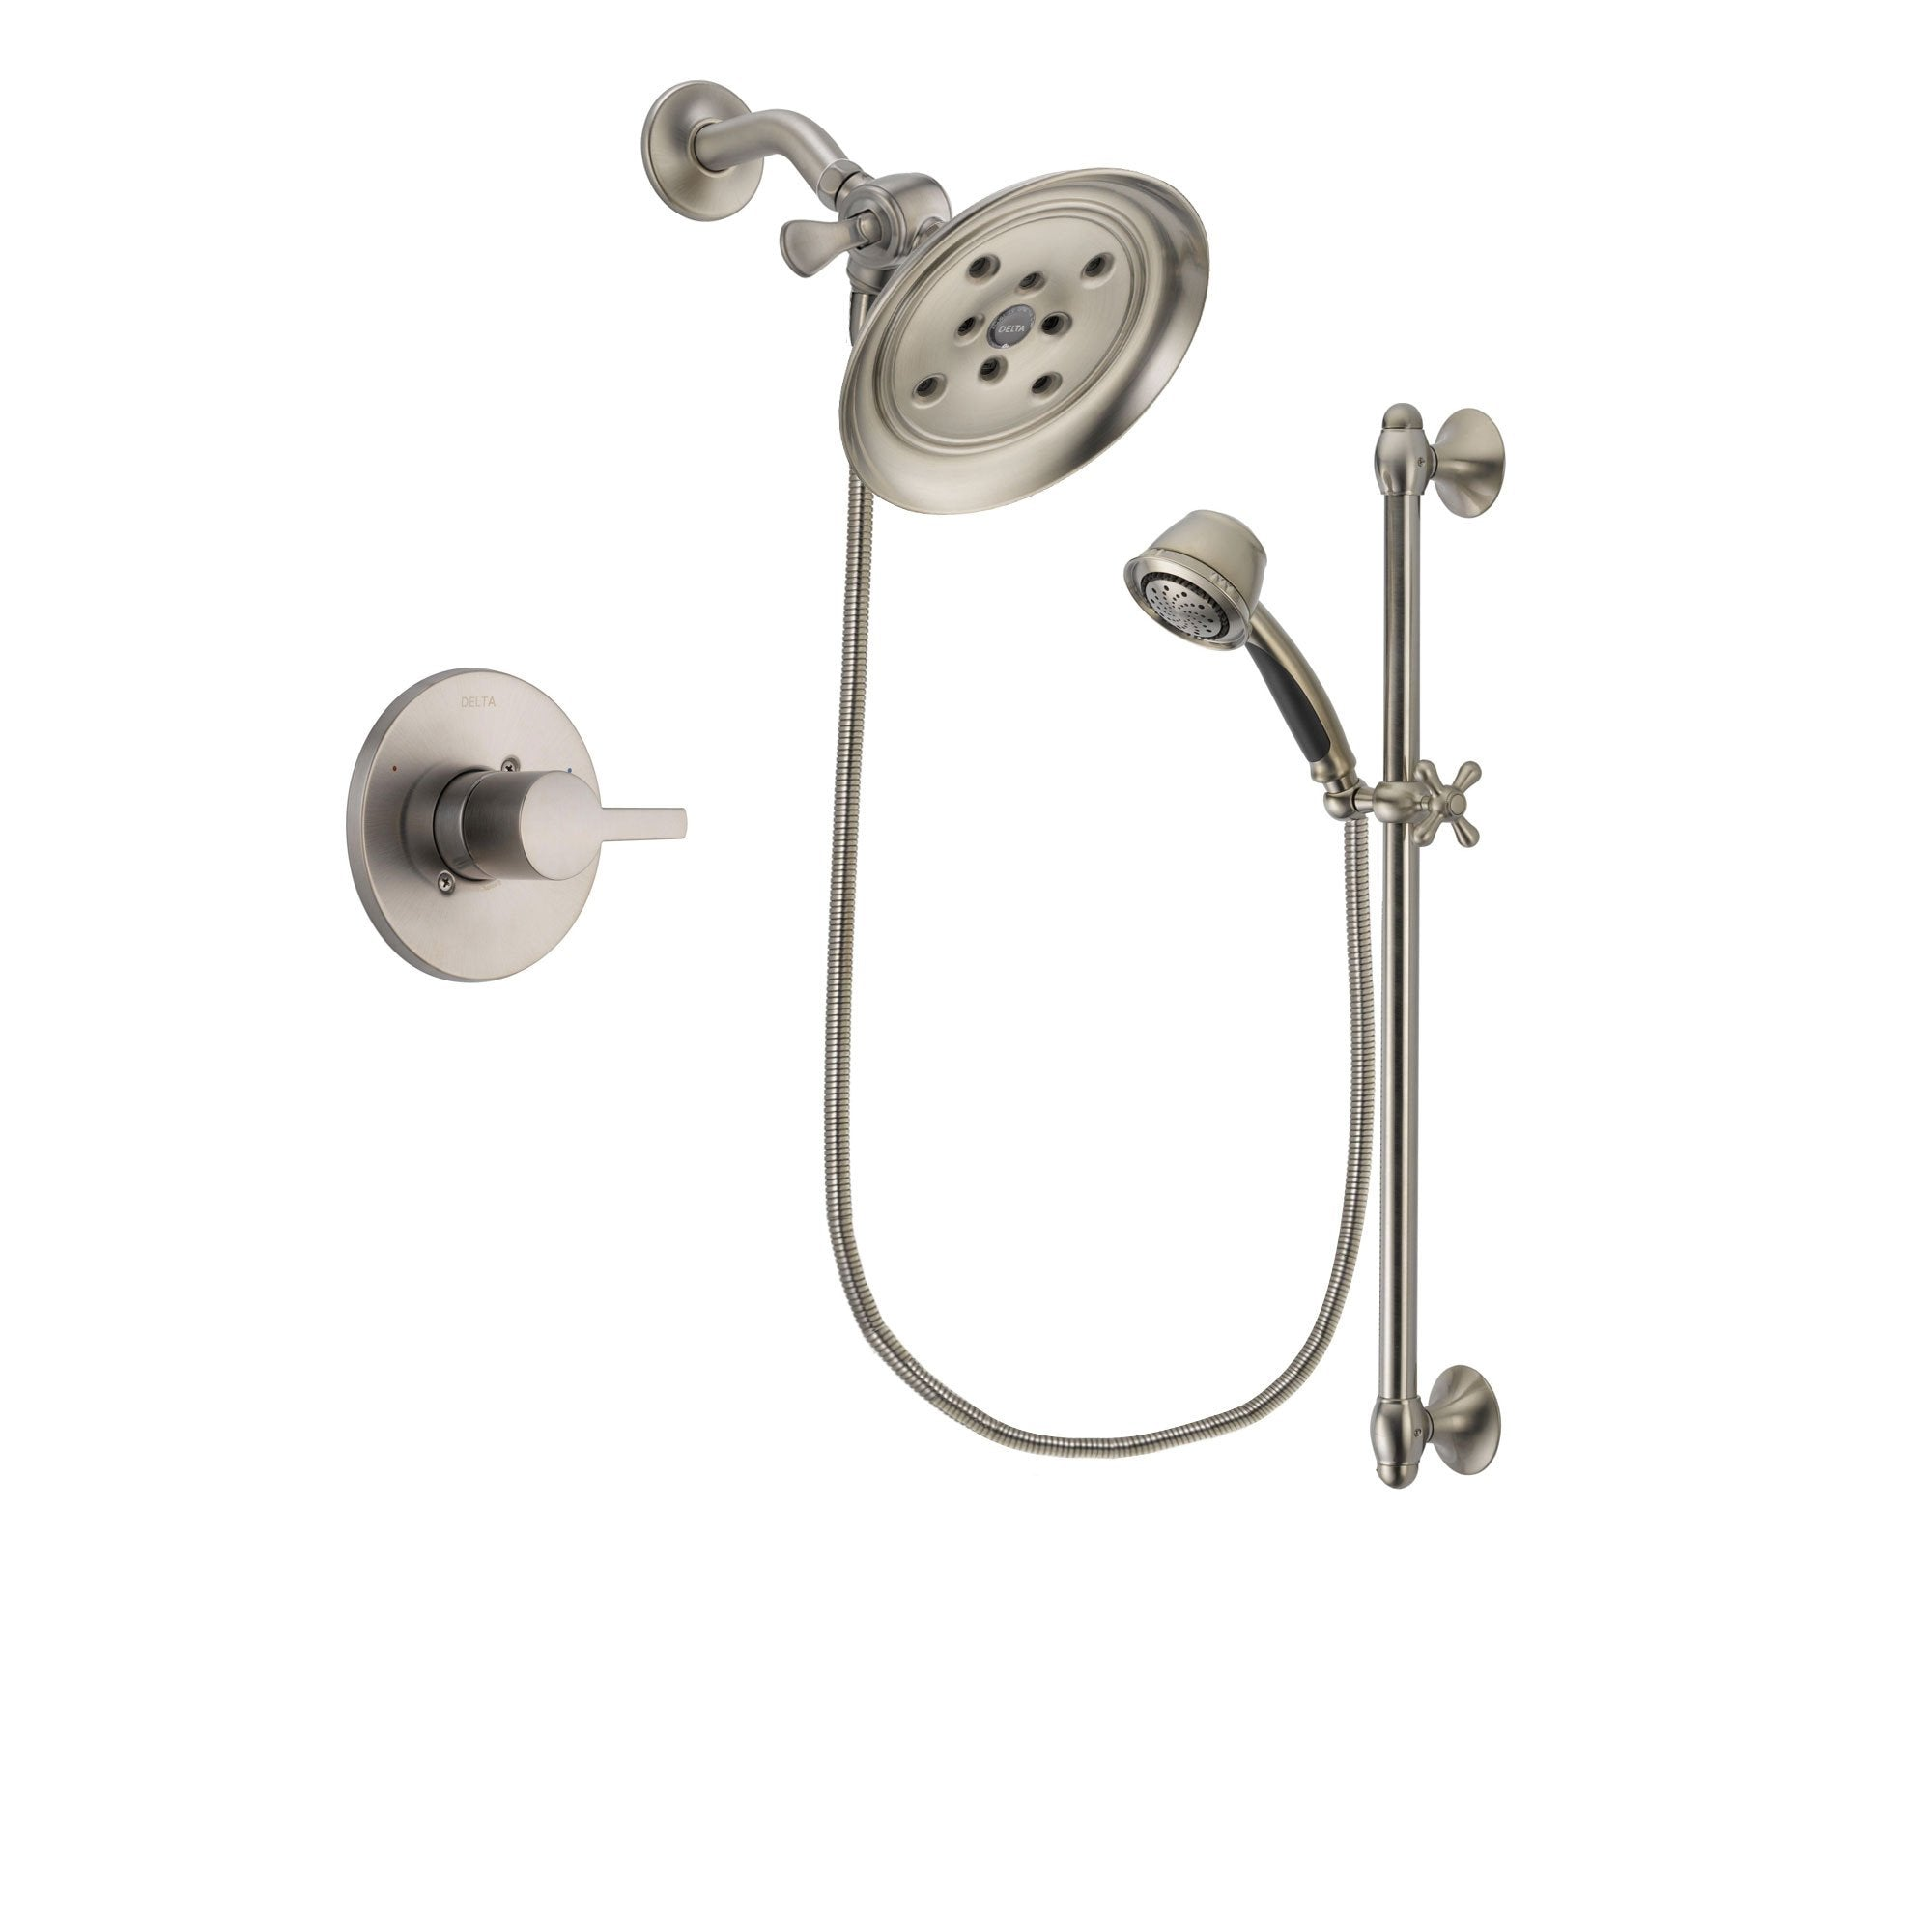 Delta Compel Stainless Steel Finish Shower Faucet System w/ Hand Spray DSP1324V